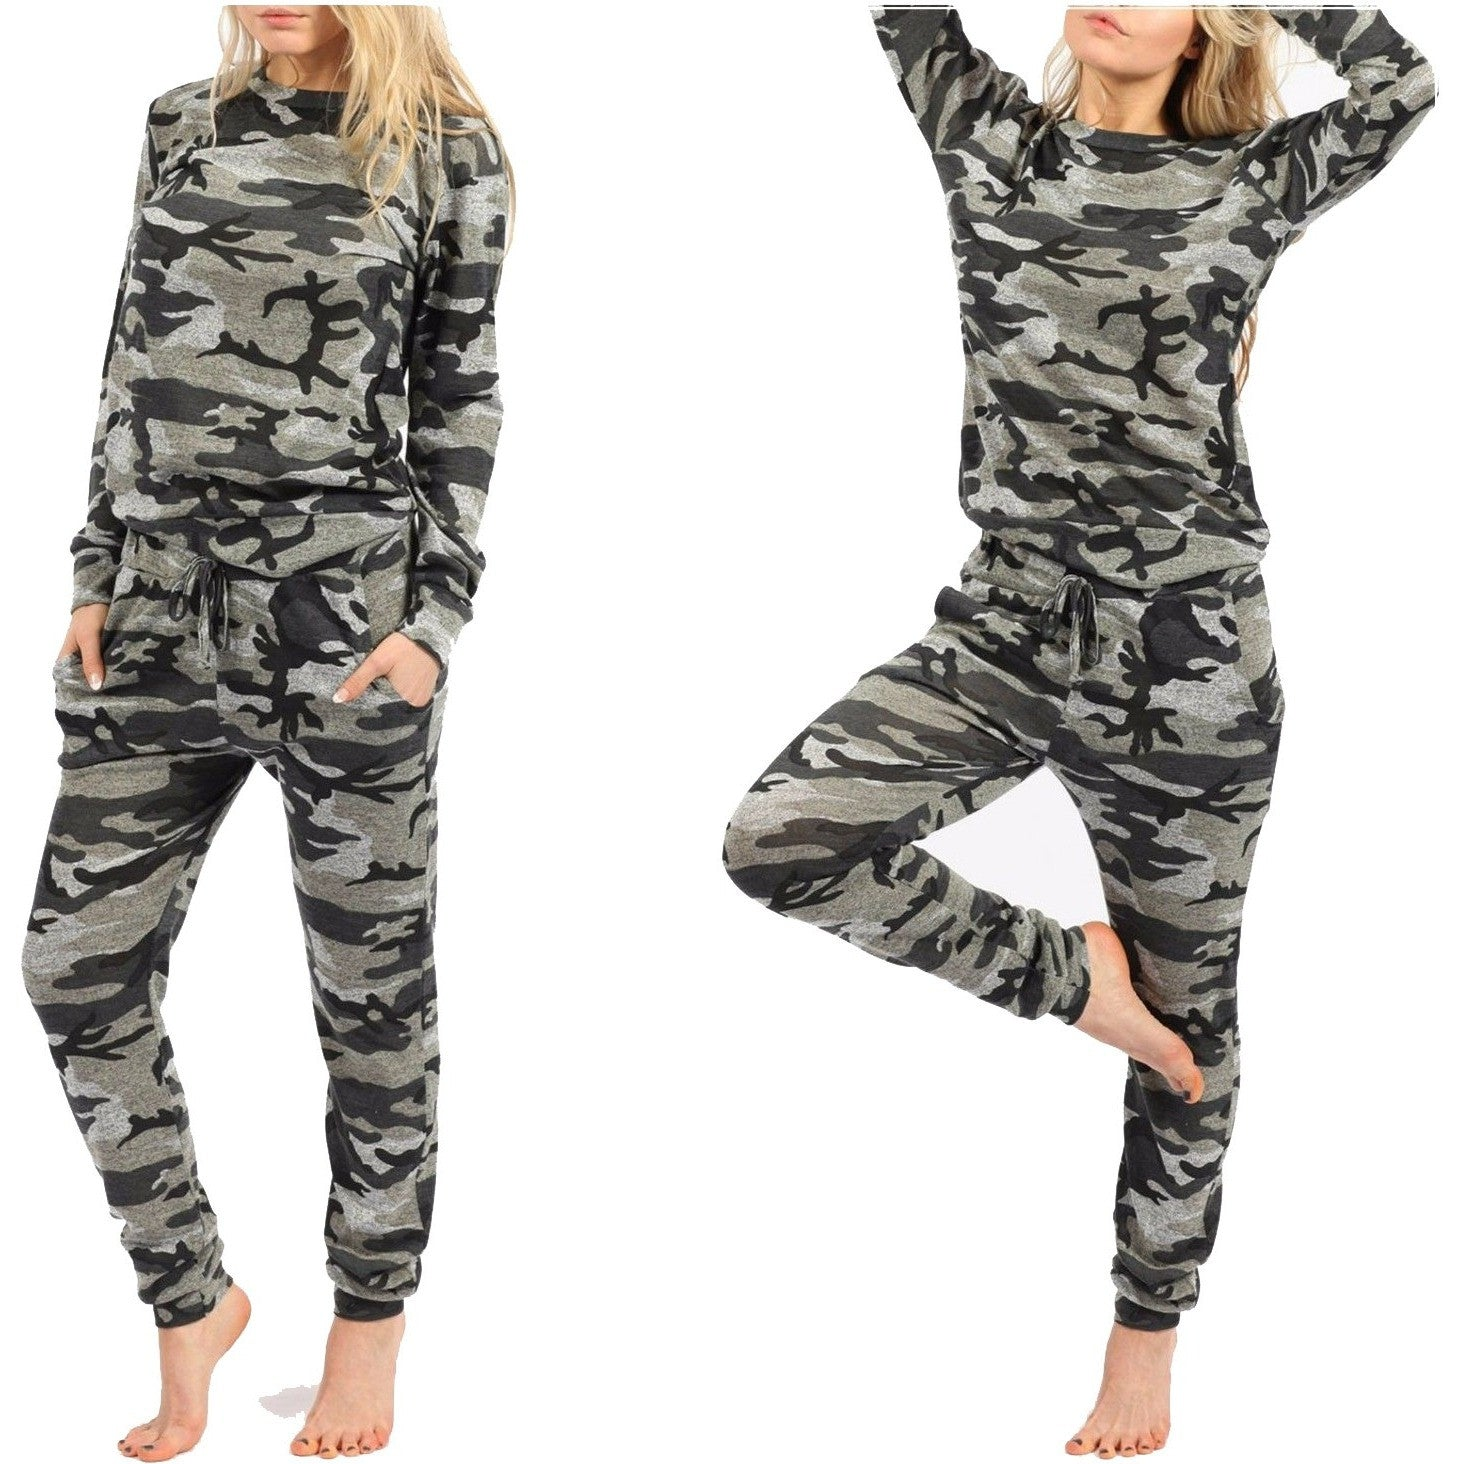 fe2f666bee Women Camouflage Print 2 Piece Tracksuit